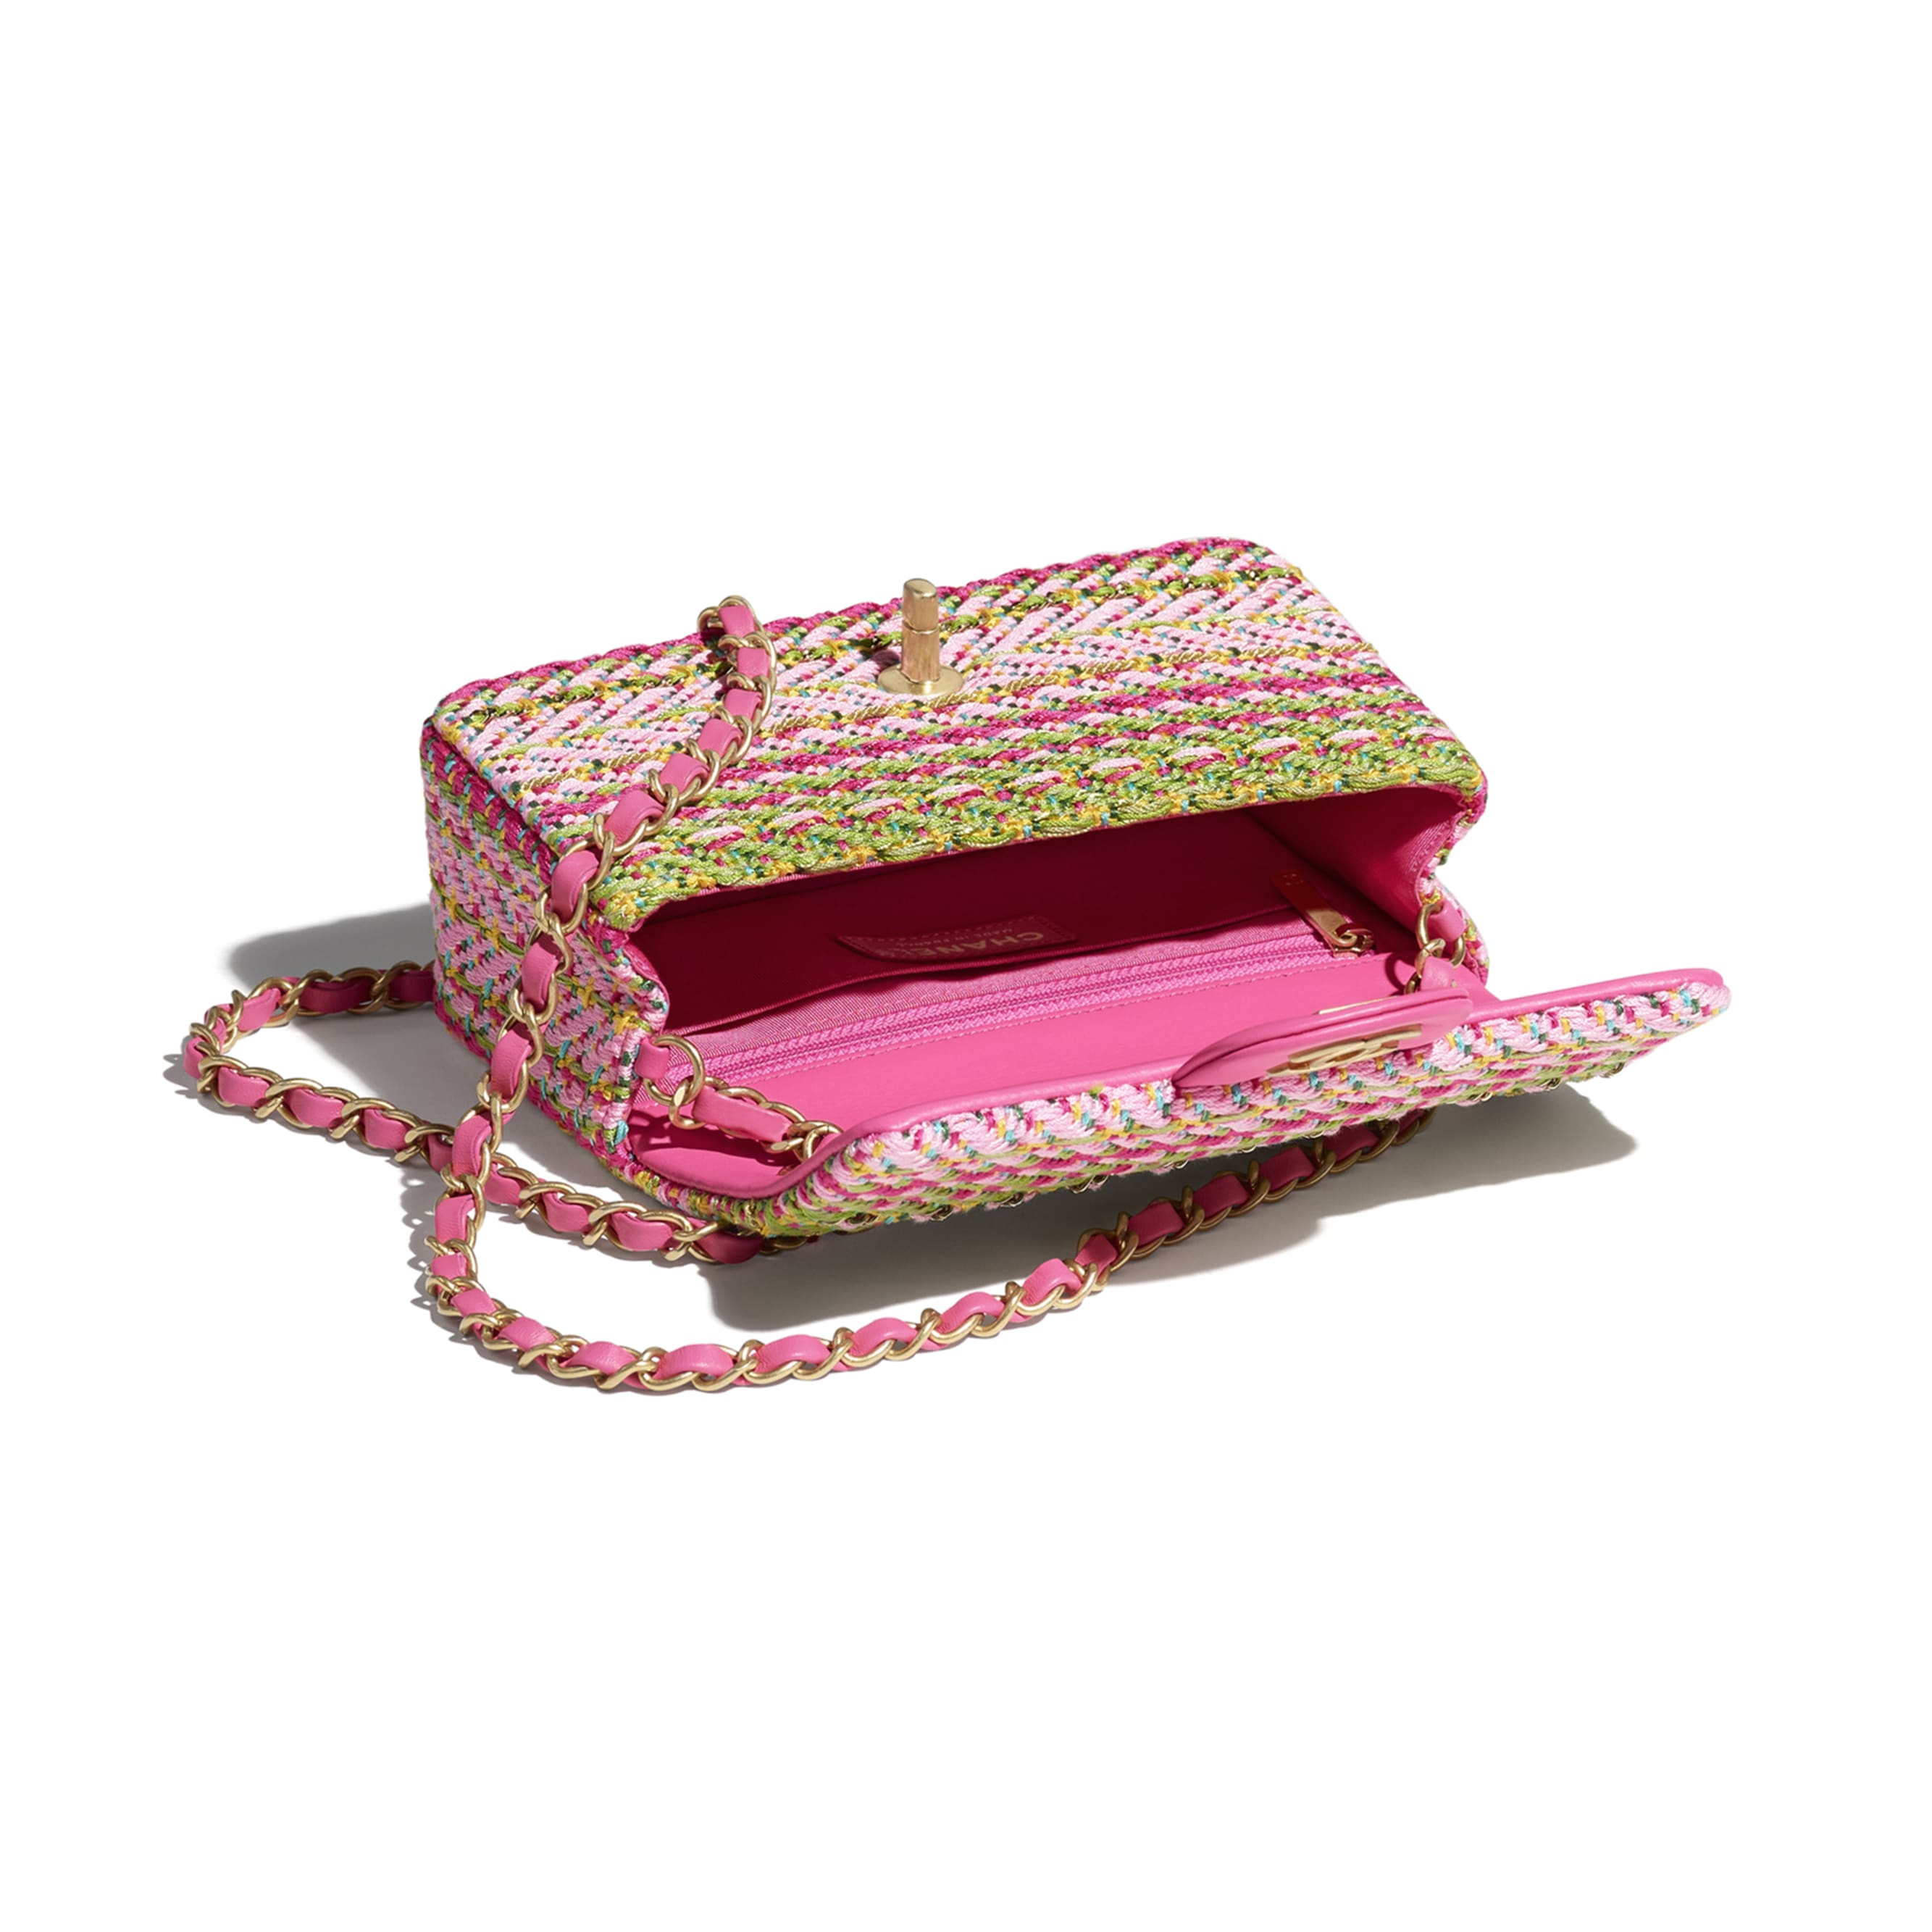 Mini Flap Bag - Fuchsia, Pale Rose, Green, Turquoise & Yellow - Cotton, Mixed Fibers & Gold-Tone Metal - CHANEL - Other view - see standard sized version